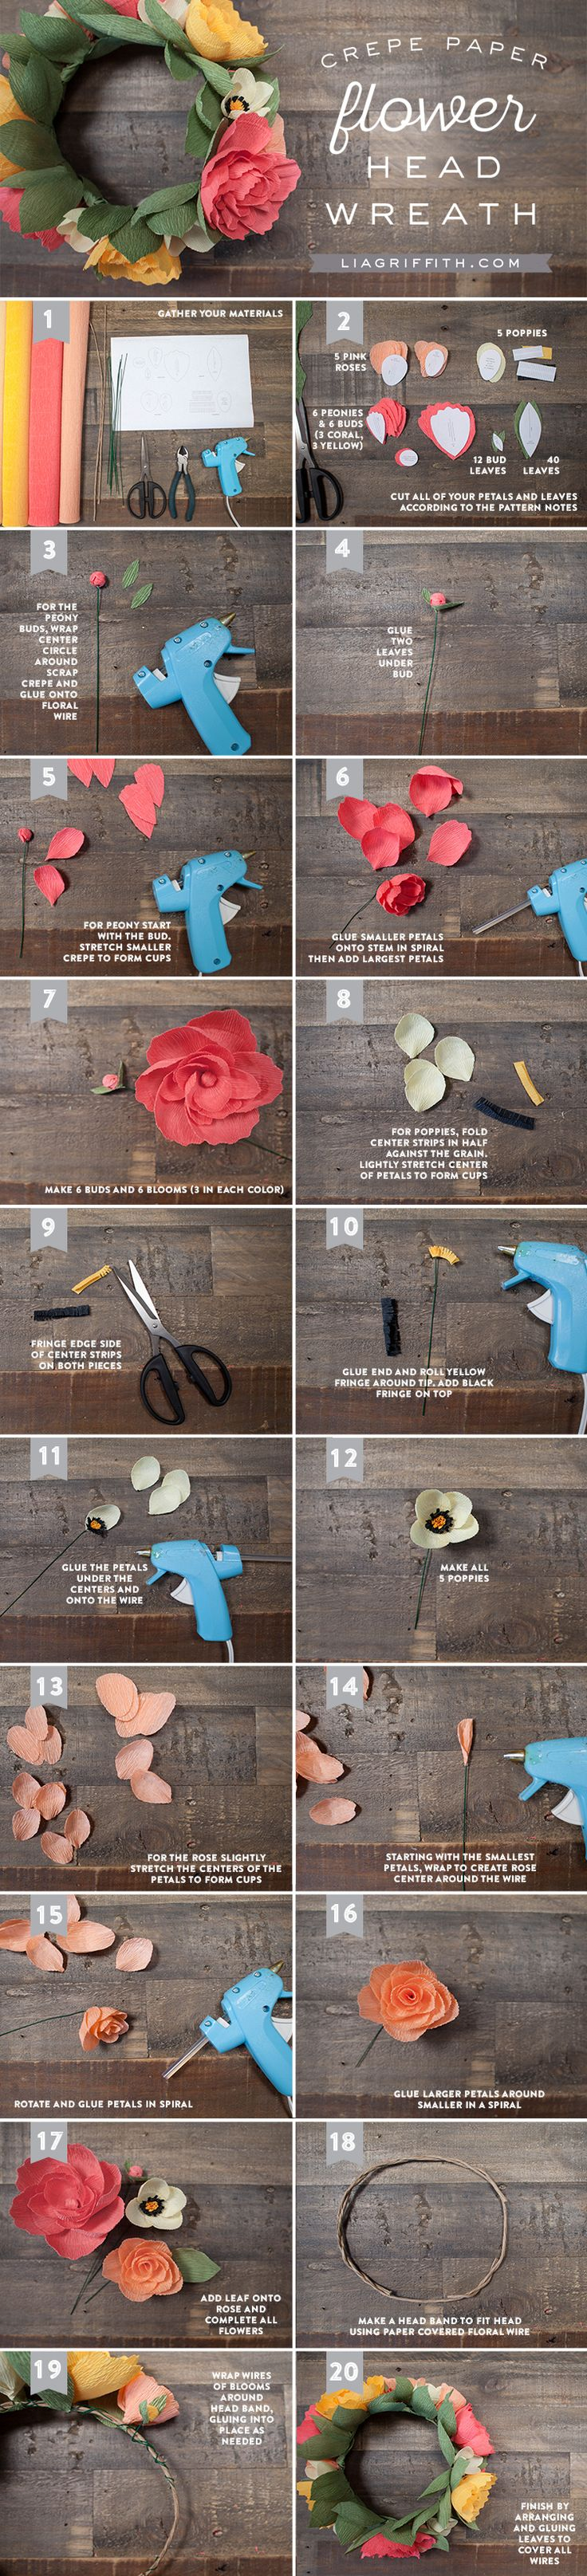 DIY Crepe Paper Flower Crown Tutorial with FREE Printable Template here: http://liagriffith.com/diy-crepe-paper-flower-headband/